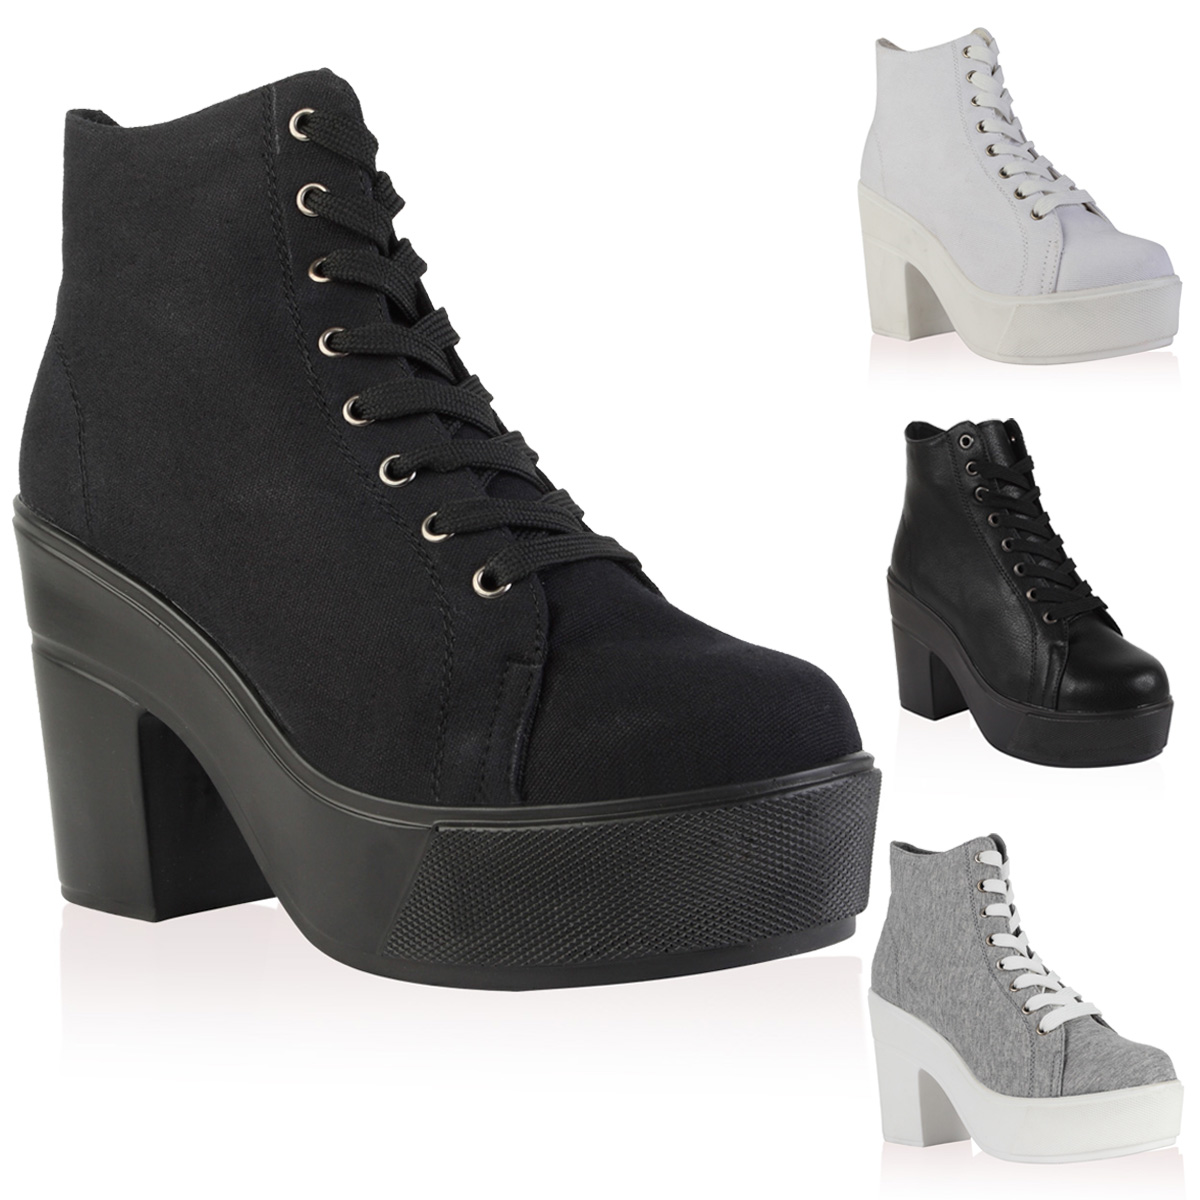 NEW WOMENS LACE UP CANVAS LADIES PLATFORM BLOCK HEEL ANKLE BOOTS